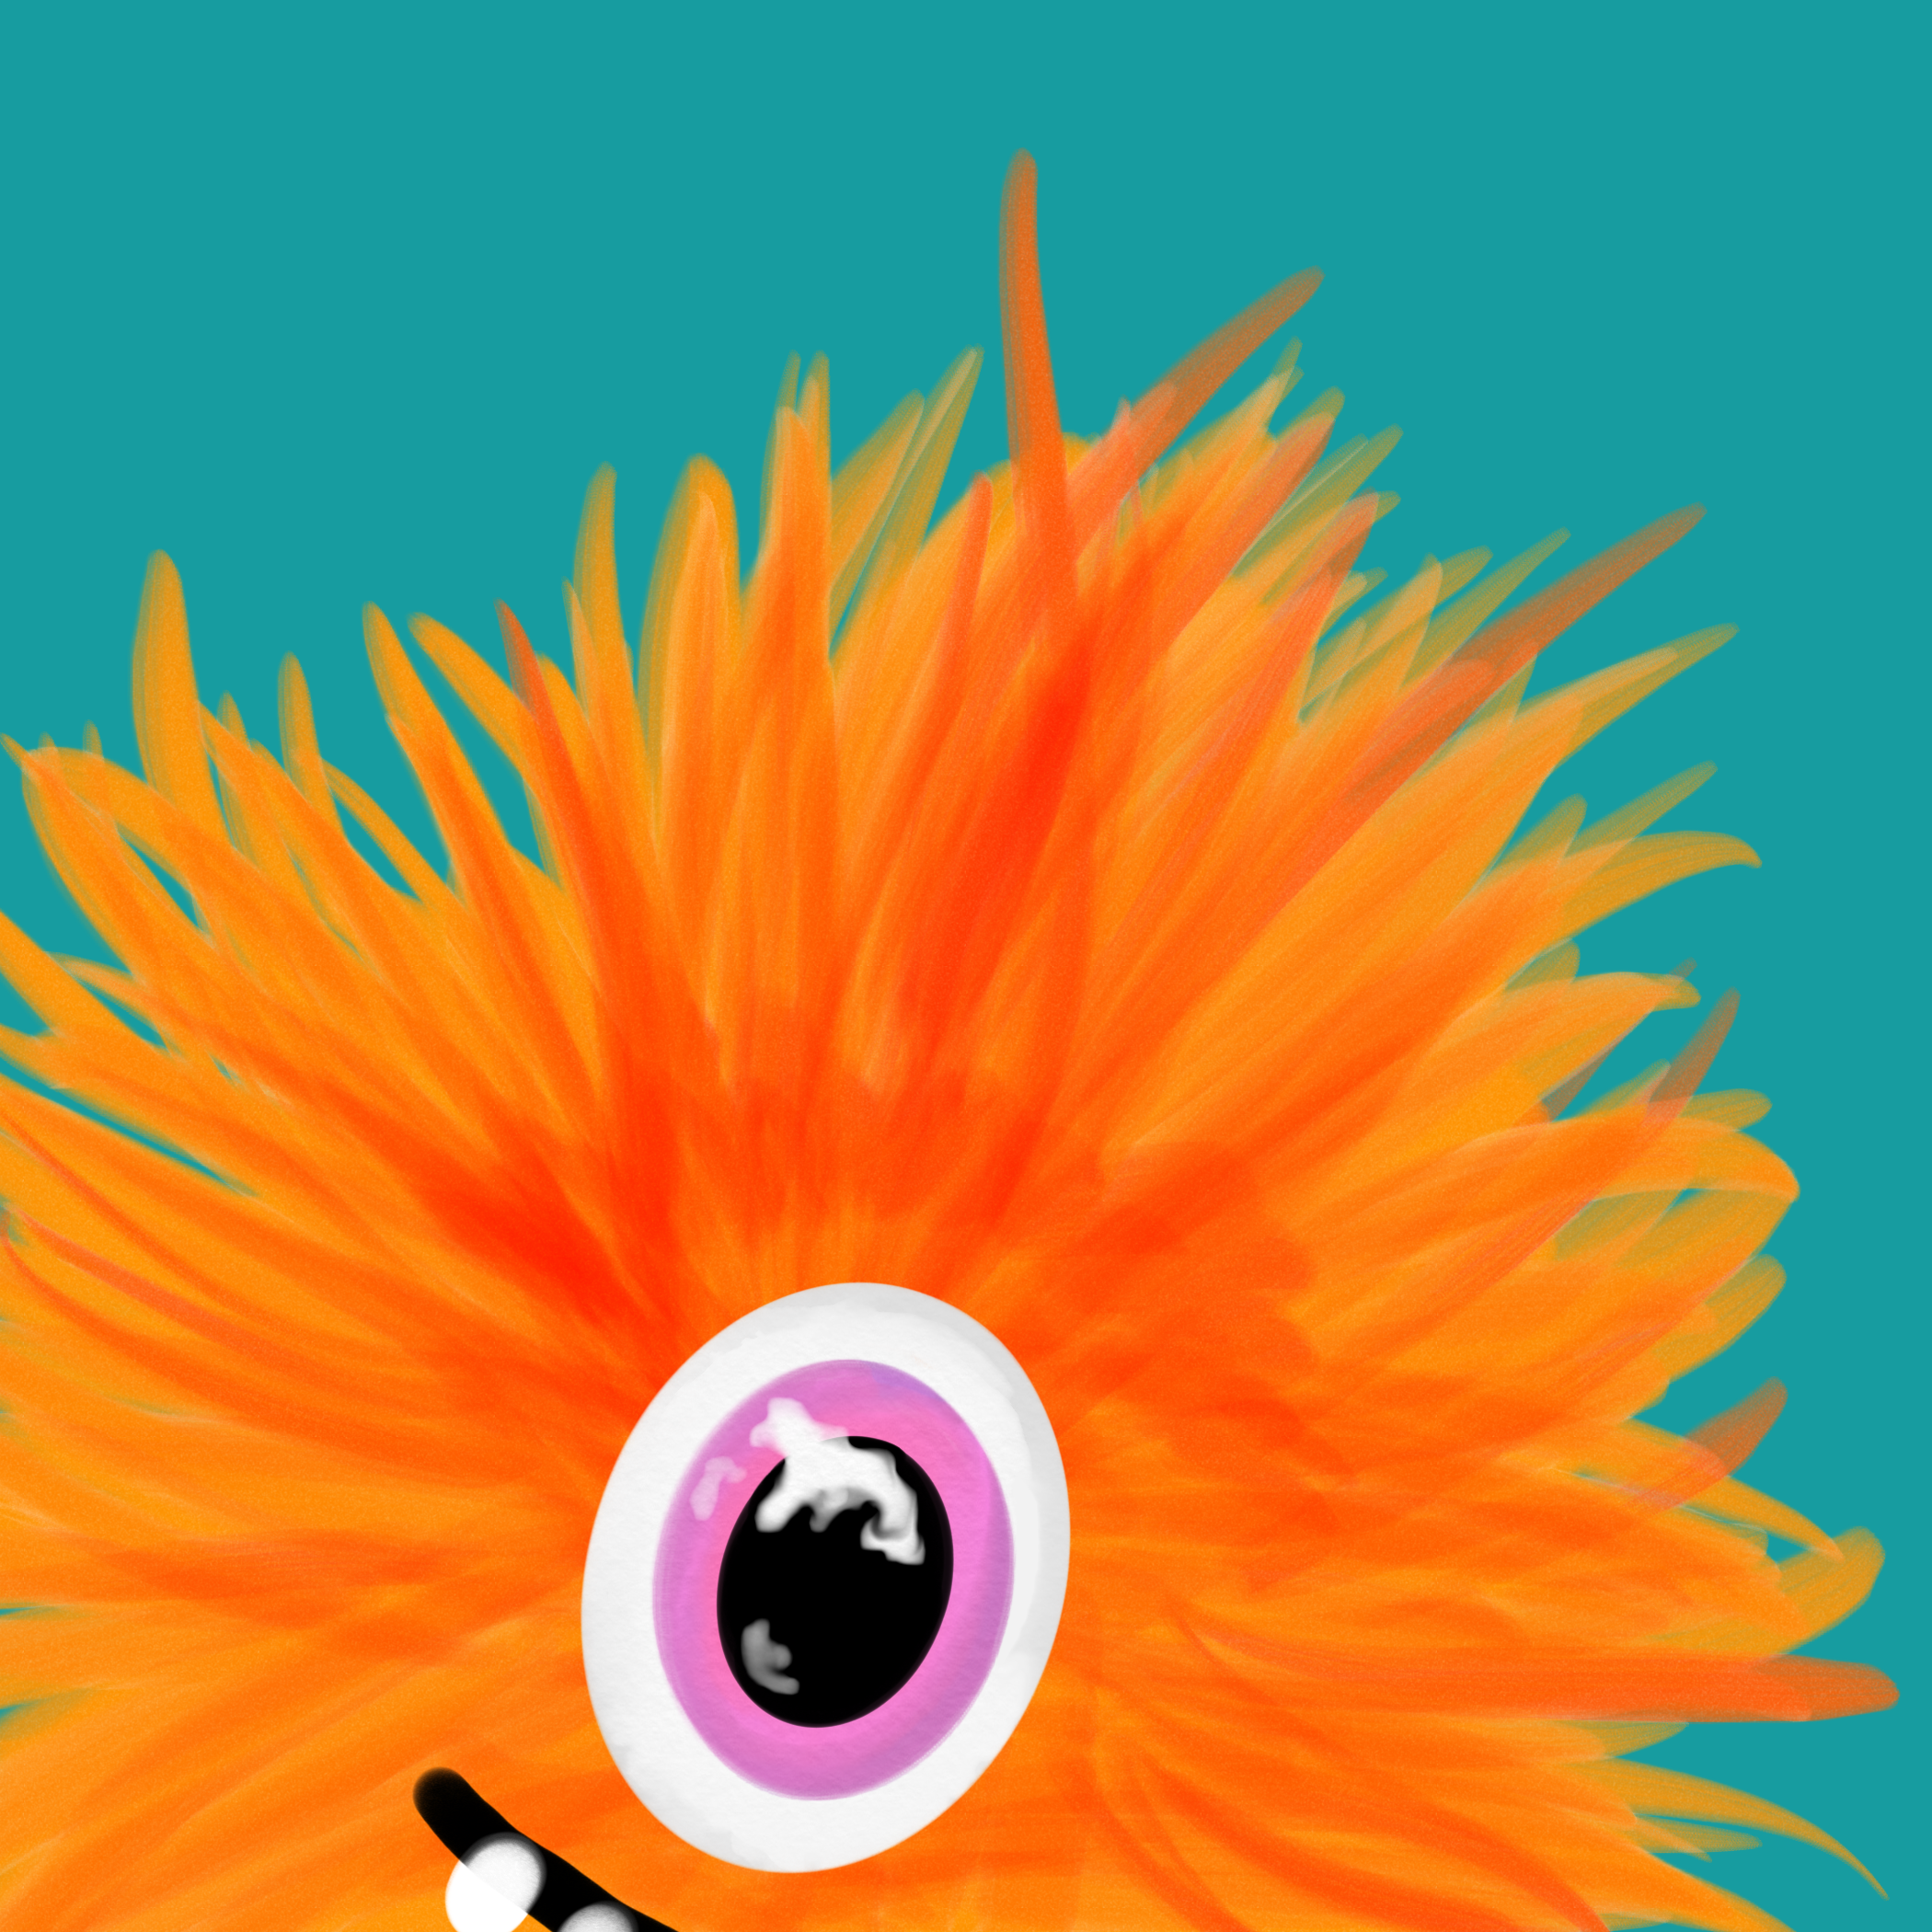 PNG image-BB7F84F39303-1.png